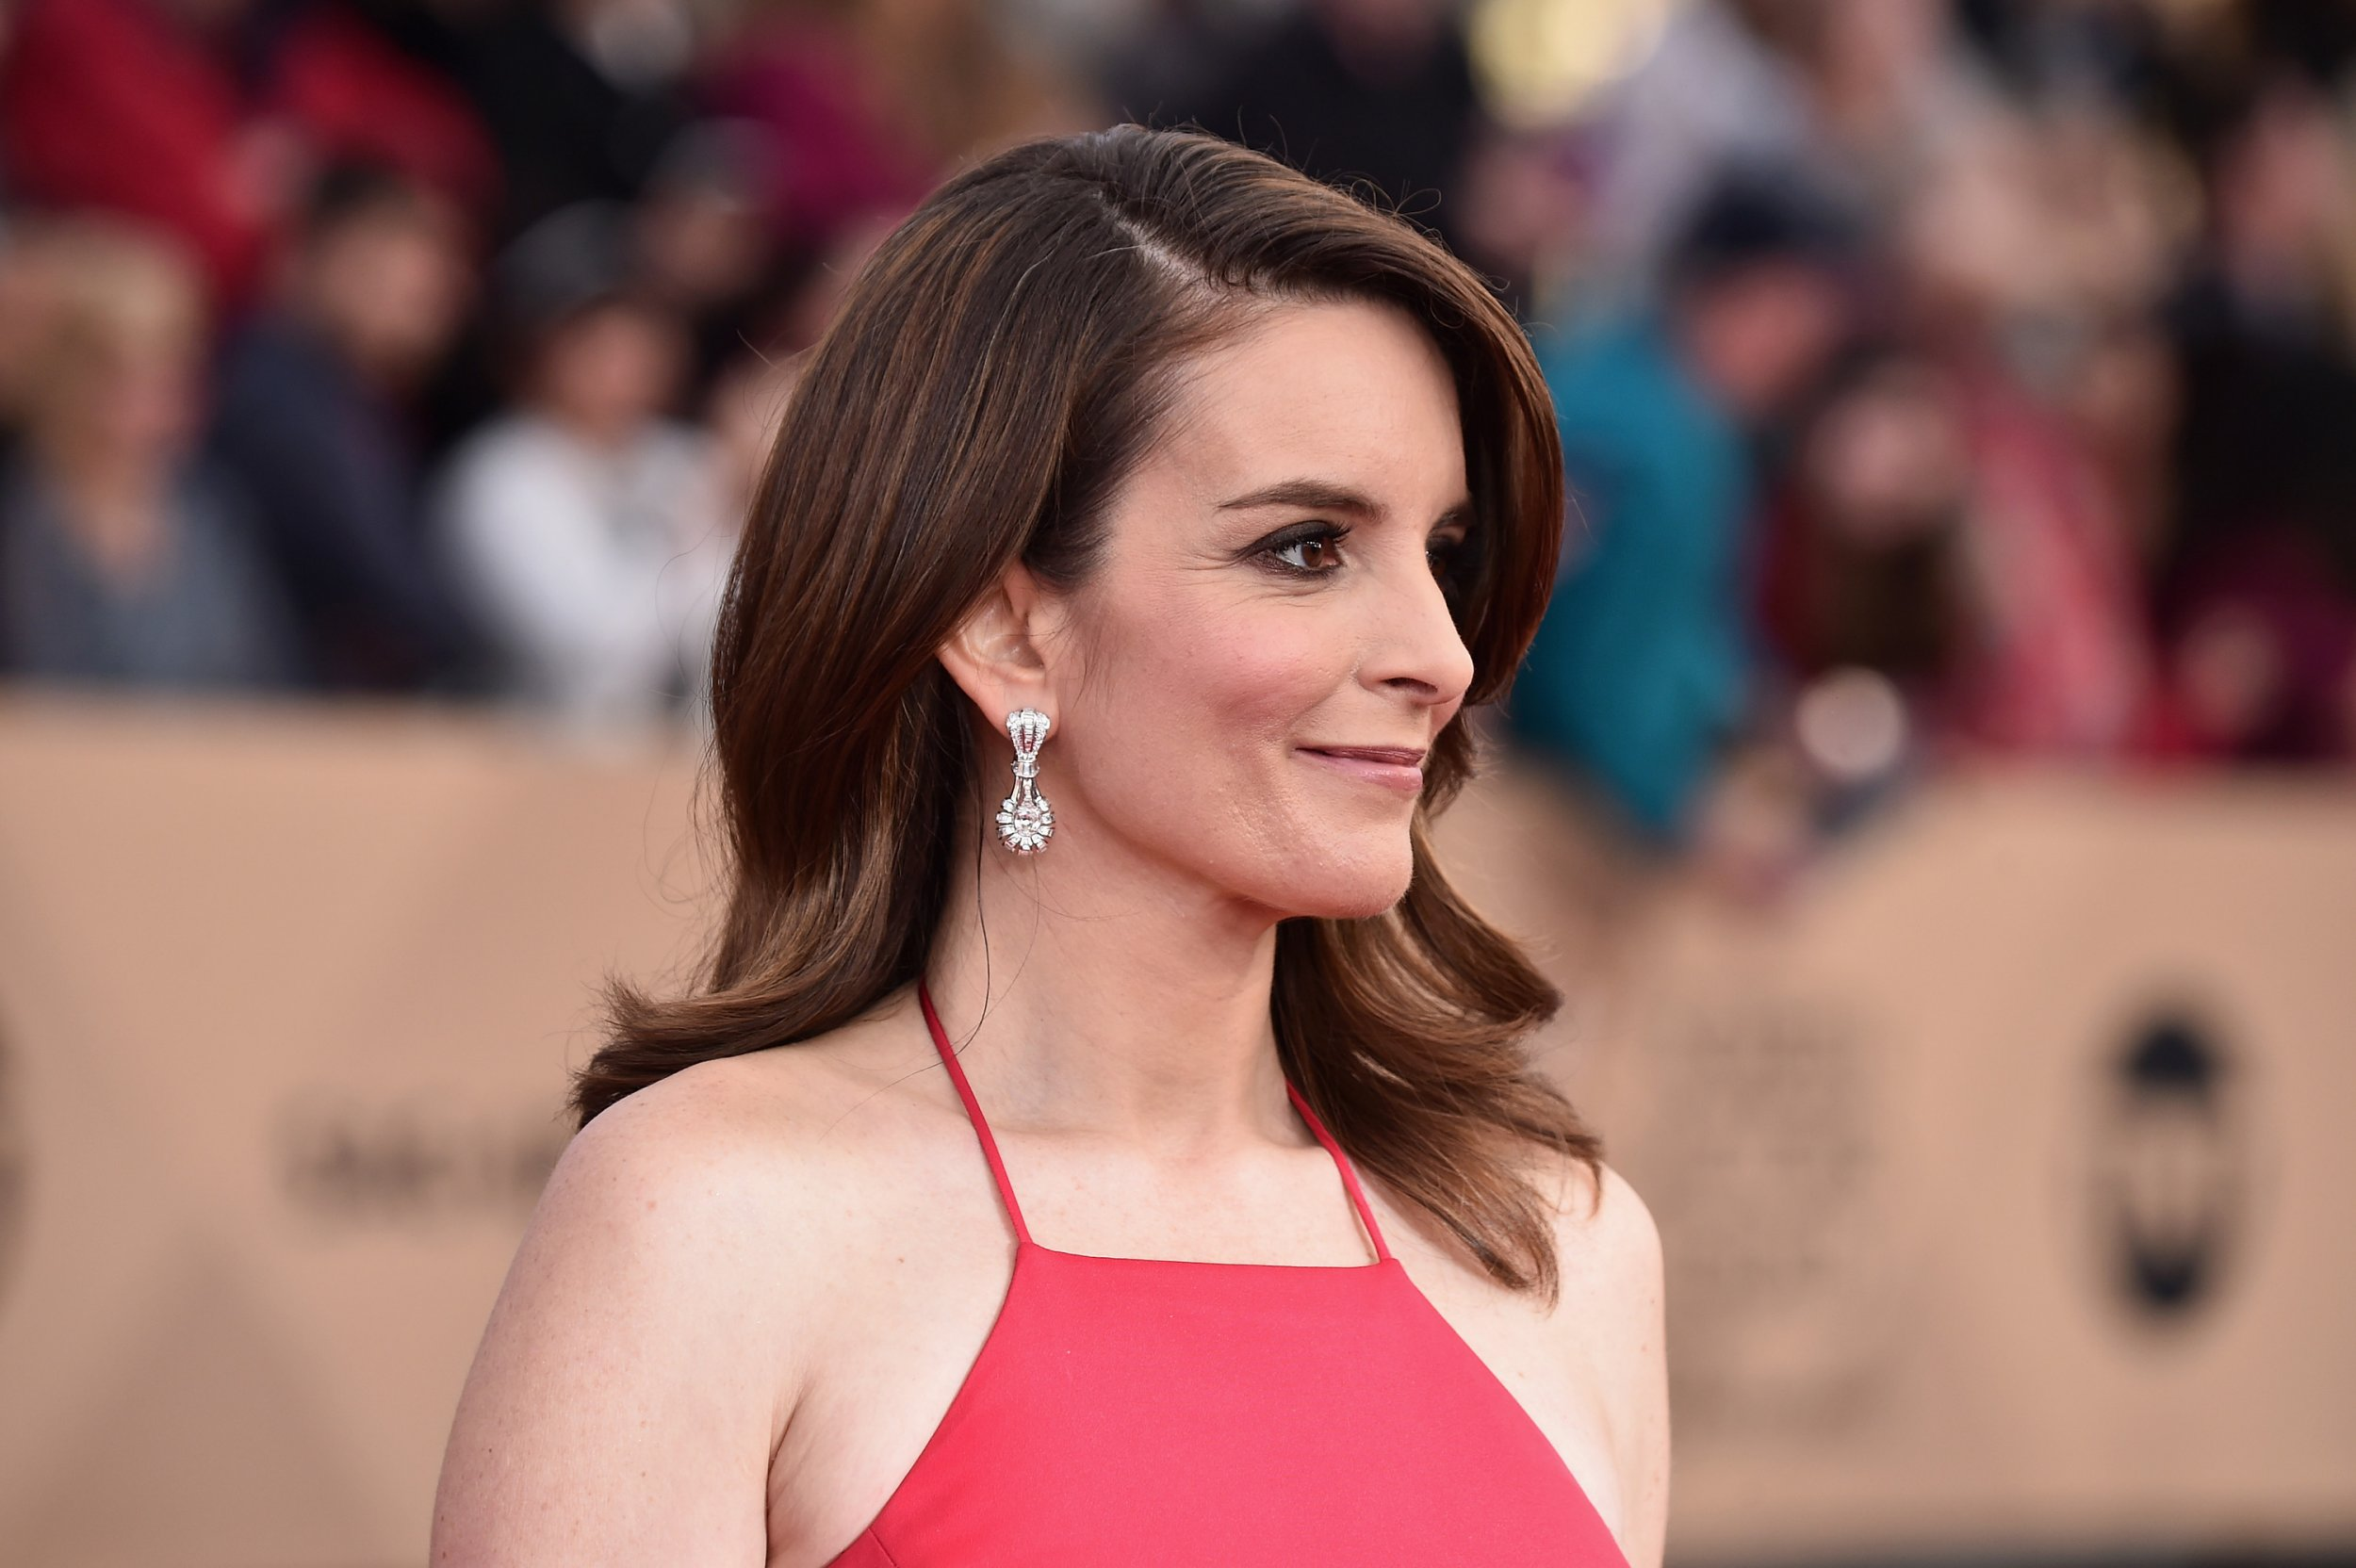 Tina Fey at SAG Awards 2016